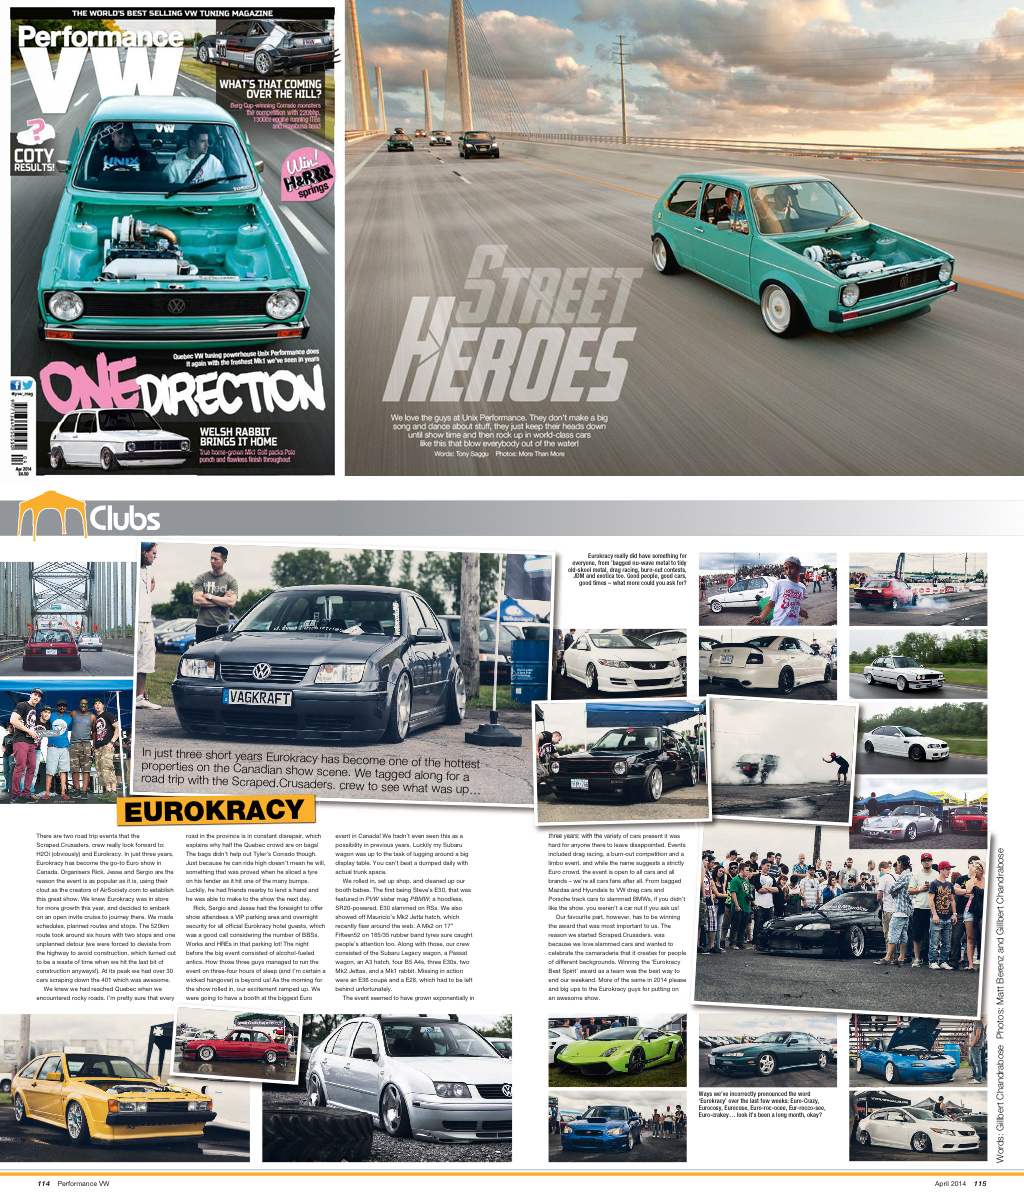 Performance-VW-Eurokracy-Unix-Performance-MK1-April-2014